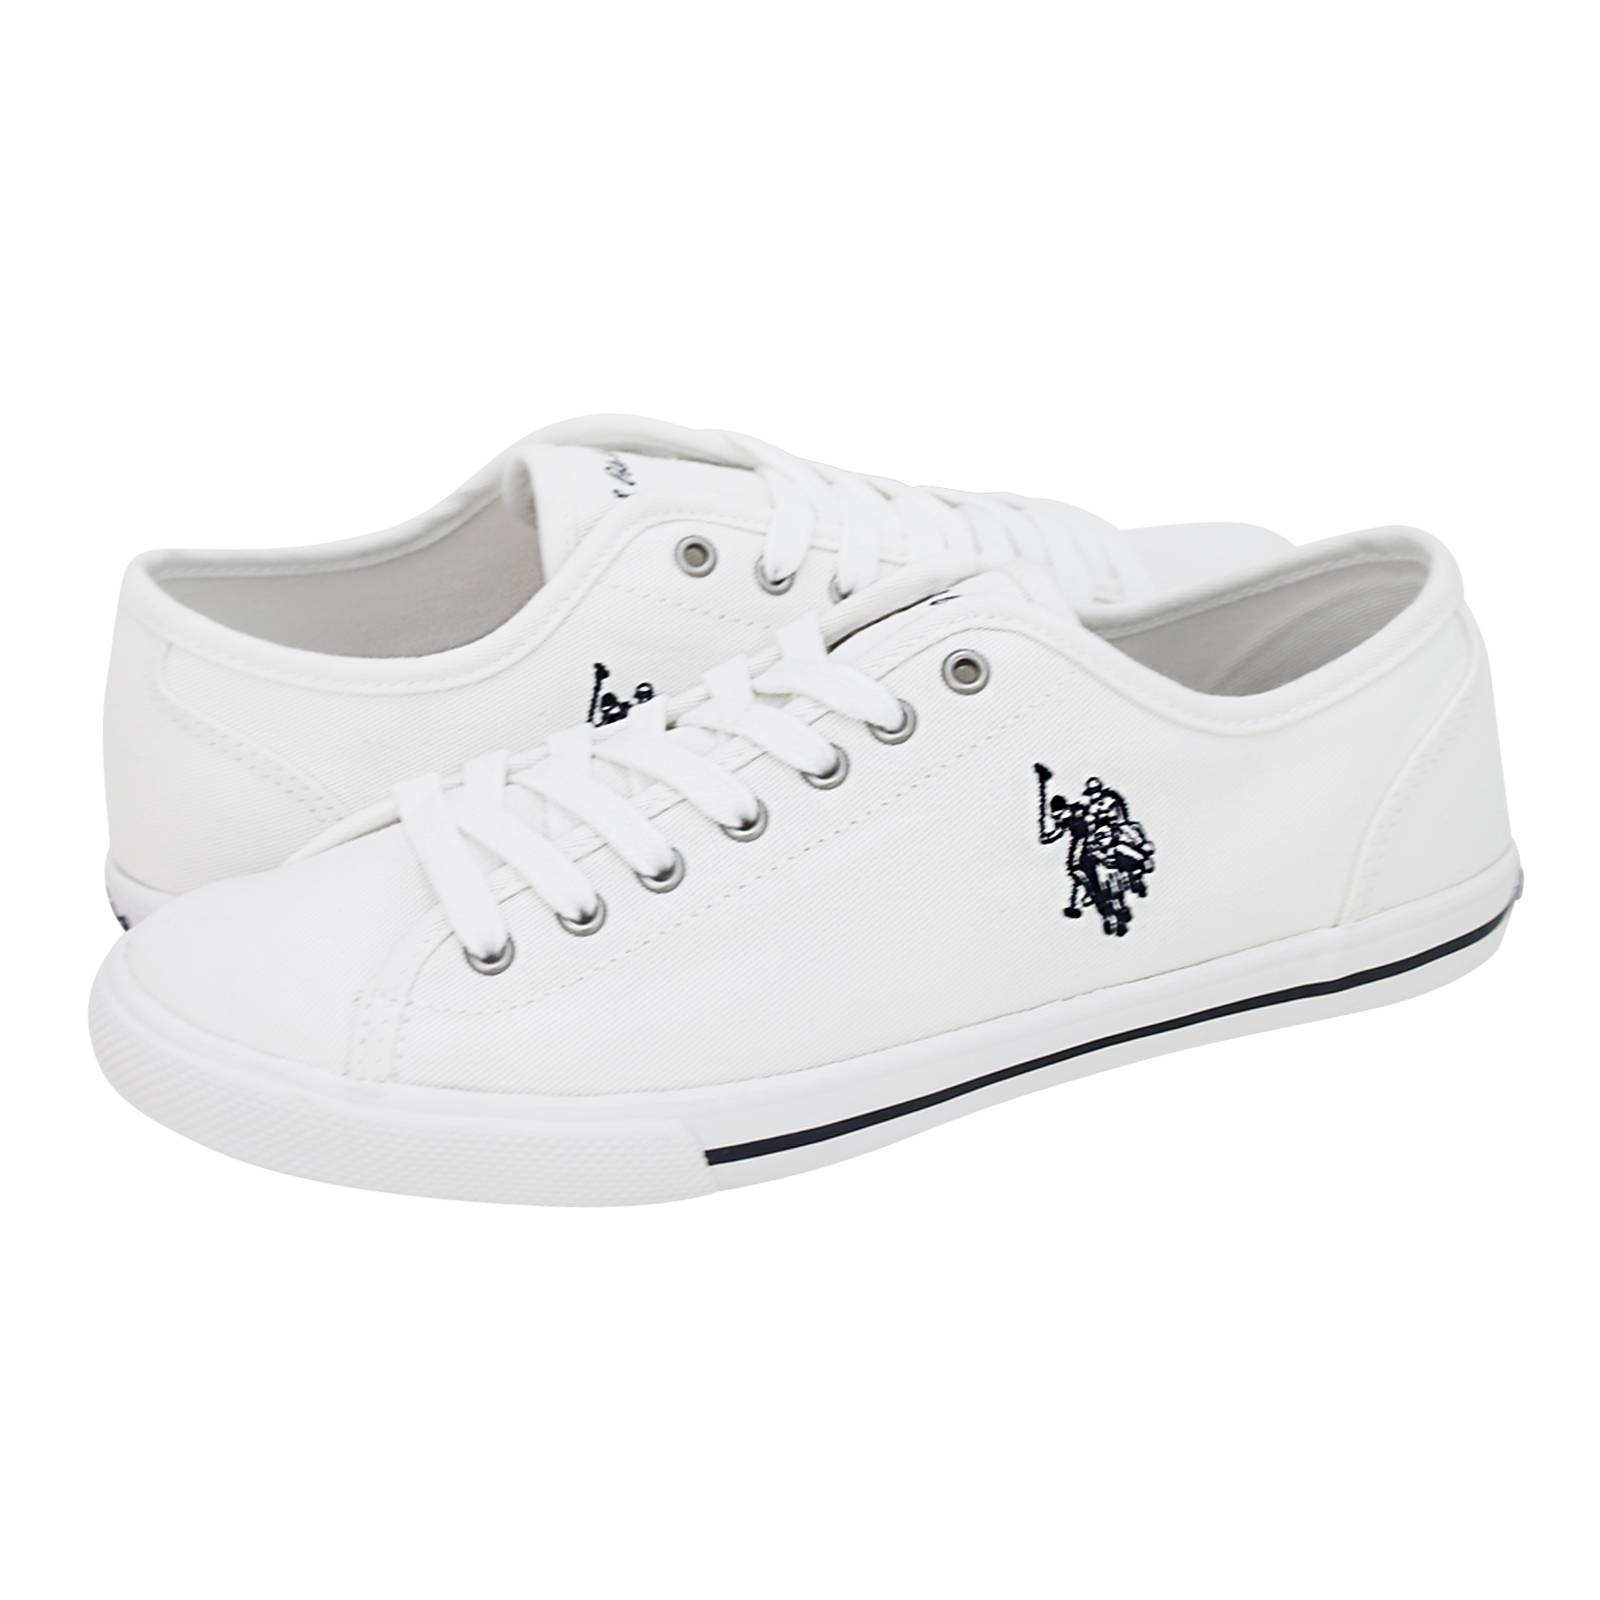 f2d43c35c732 Castions - Γυναικεία παπούτσια casual U.S. Polo ASSN από υφασμα ...